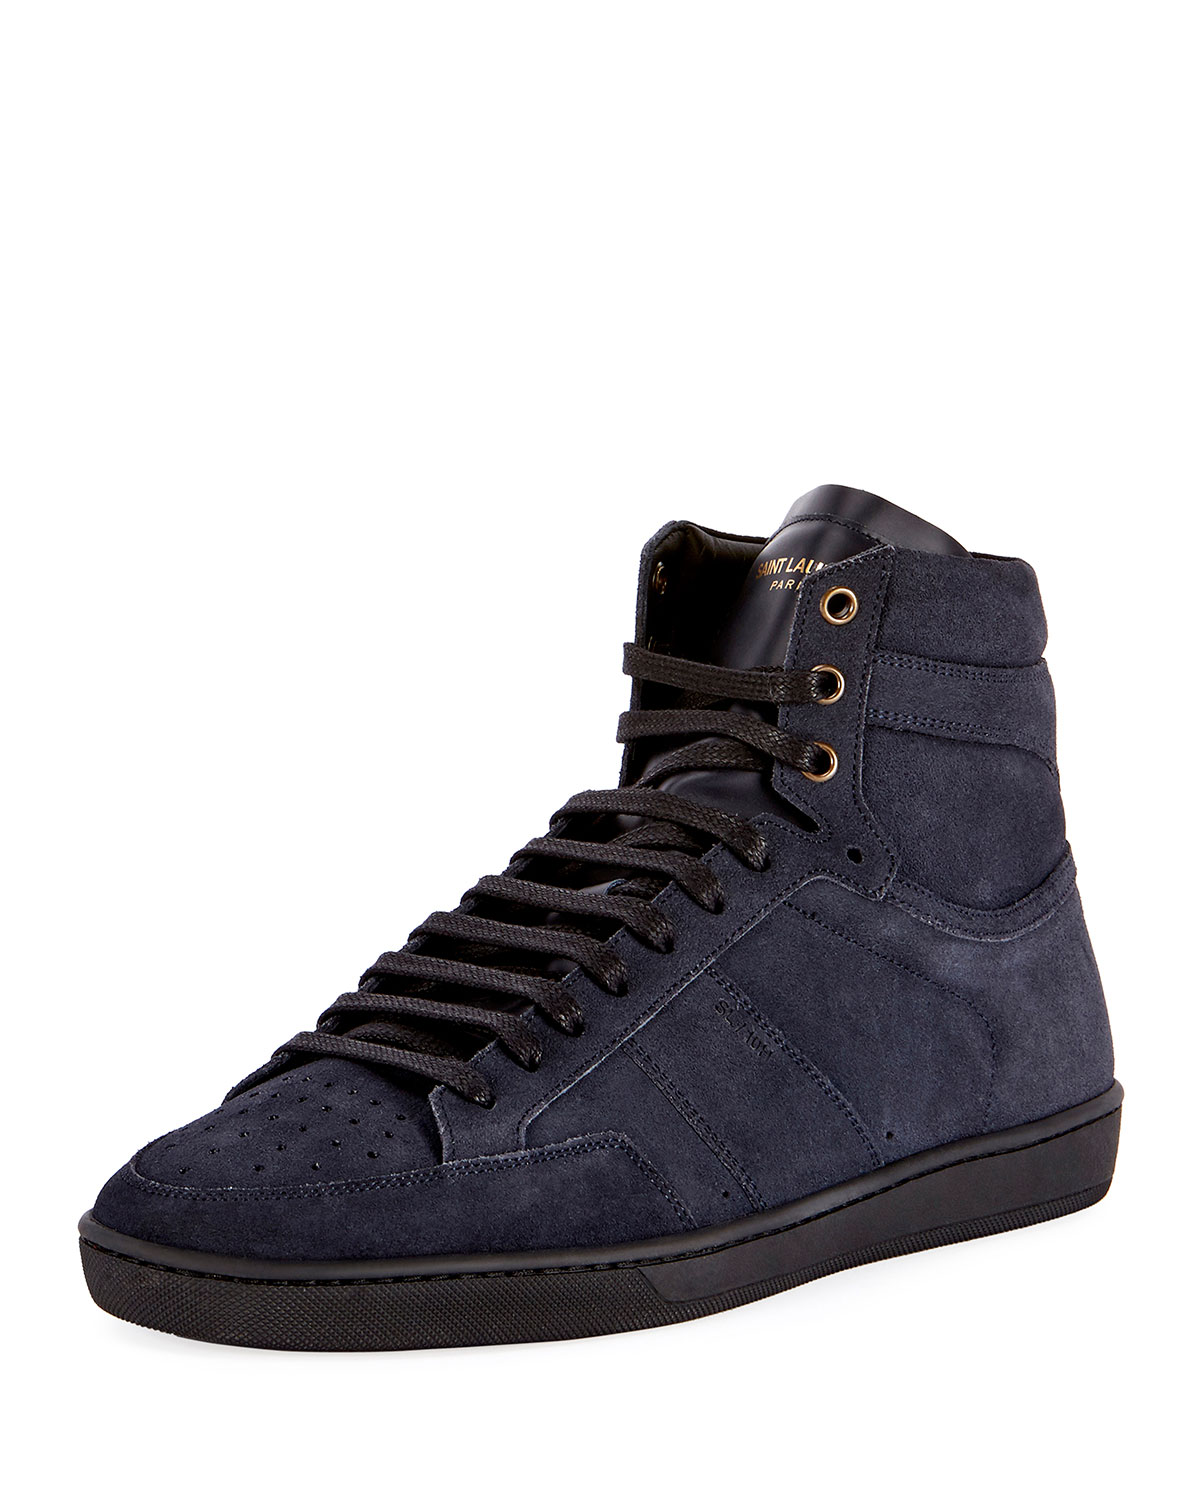 b438f1a99ff8c Saint LaurentSL 10H Men s Signature Court Classic Suede High-Top Sneakers